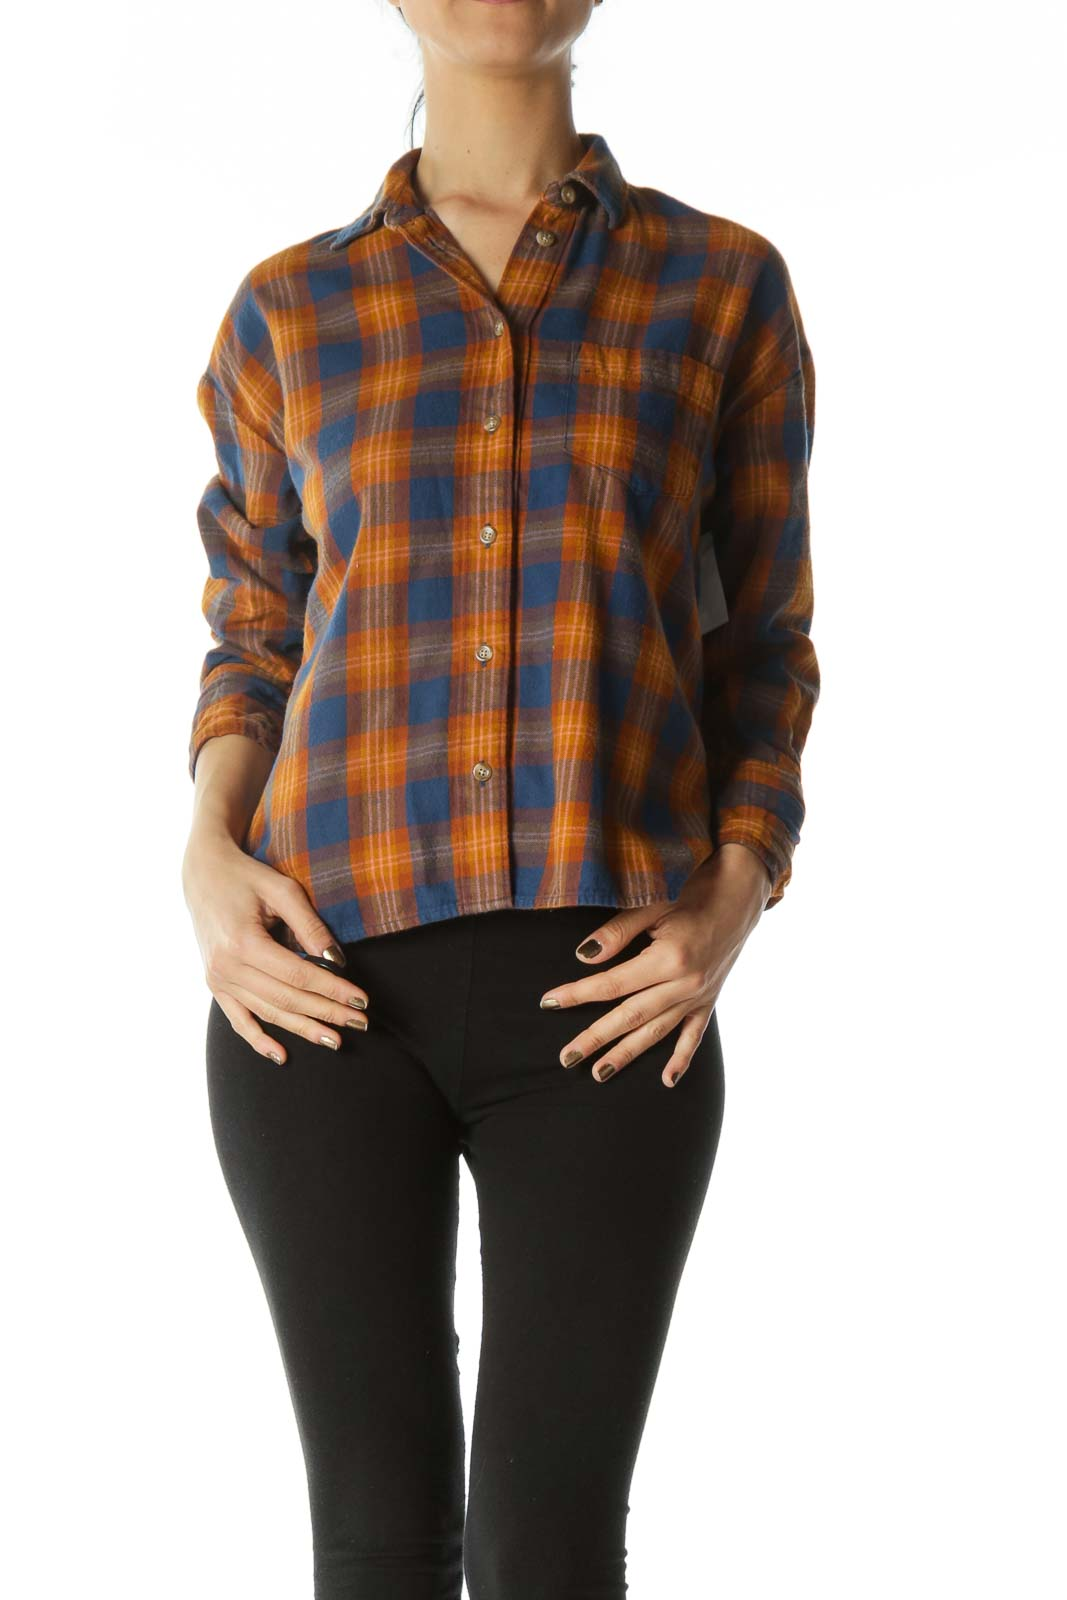 Orange and Blue Plaid Long-Sleeve Button-Down Front